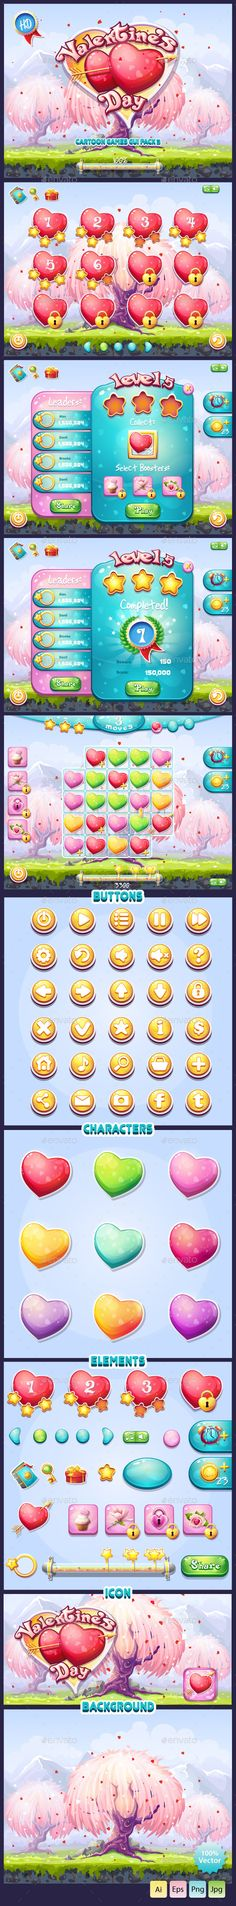 GUI Valentine's Day - User Interfaces #Game #Assets | Download http://graphicriver.net/item/gui-valentines-day/10088397?ref=sinzo